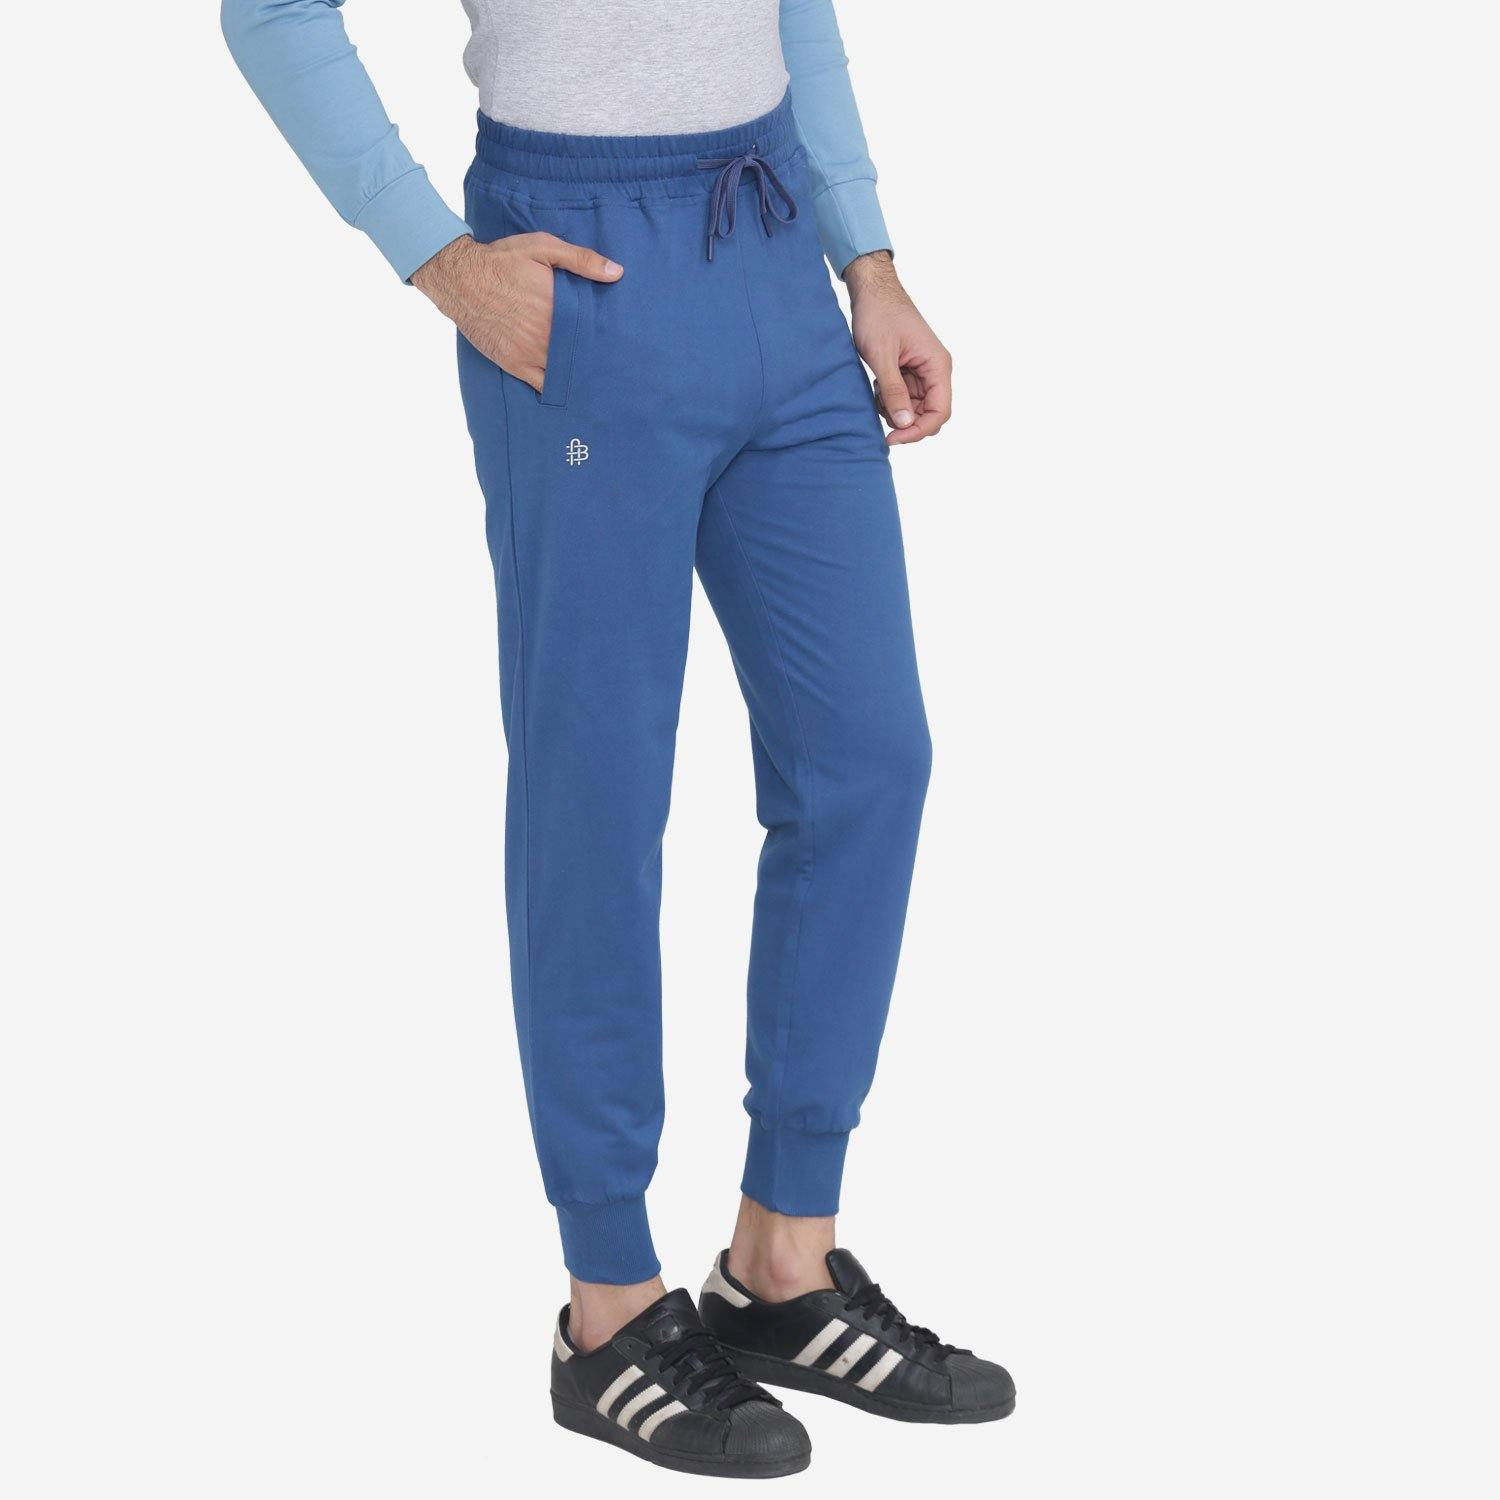 Men's Stretchable Casual Joggers Pants For Winter - Dark Blue